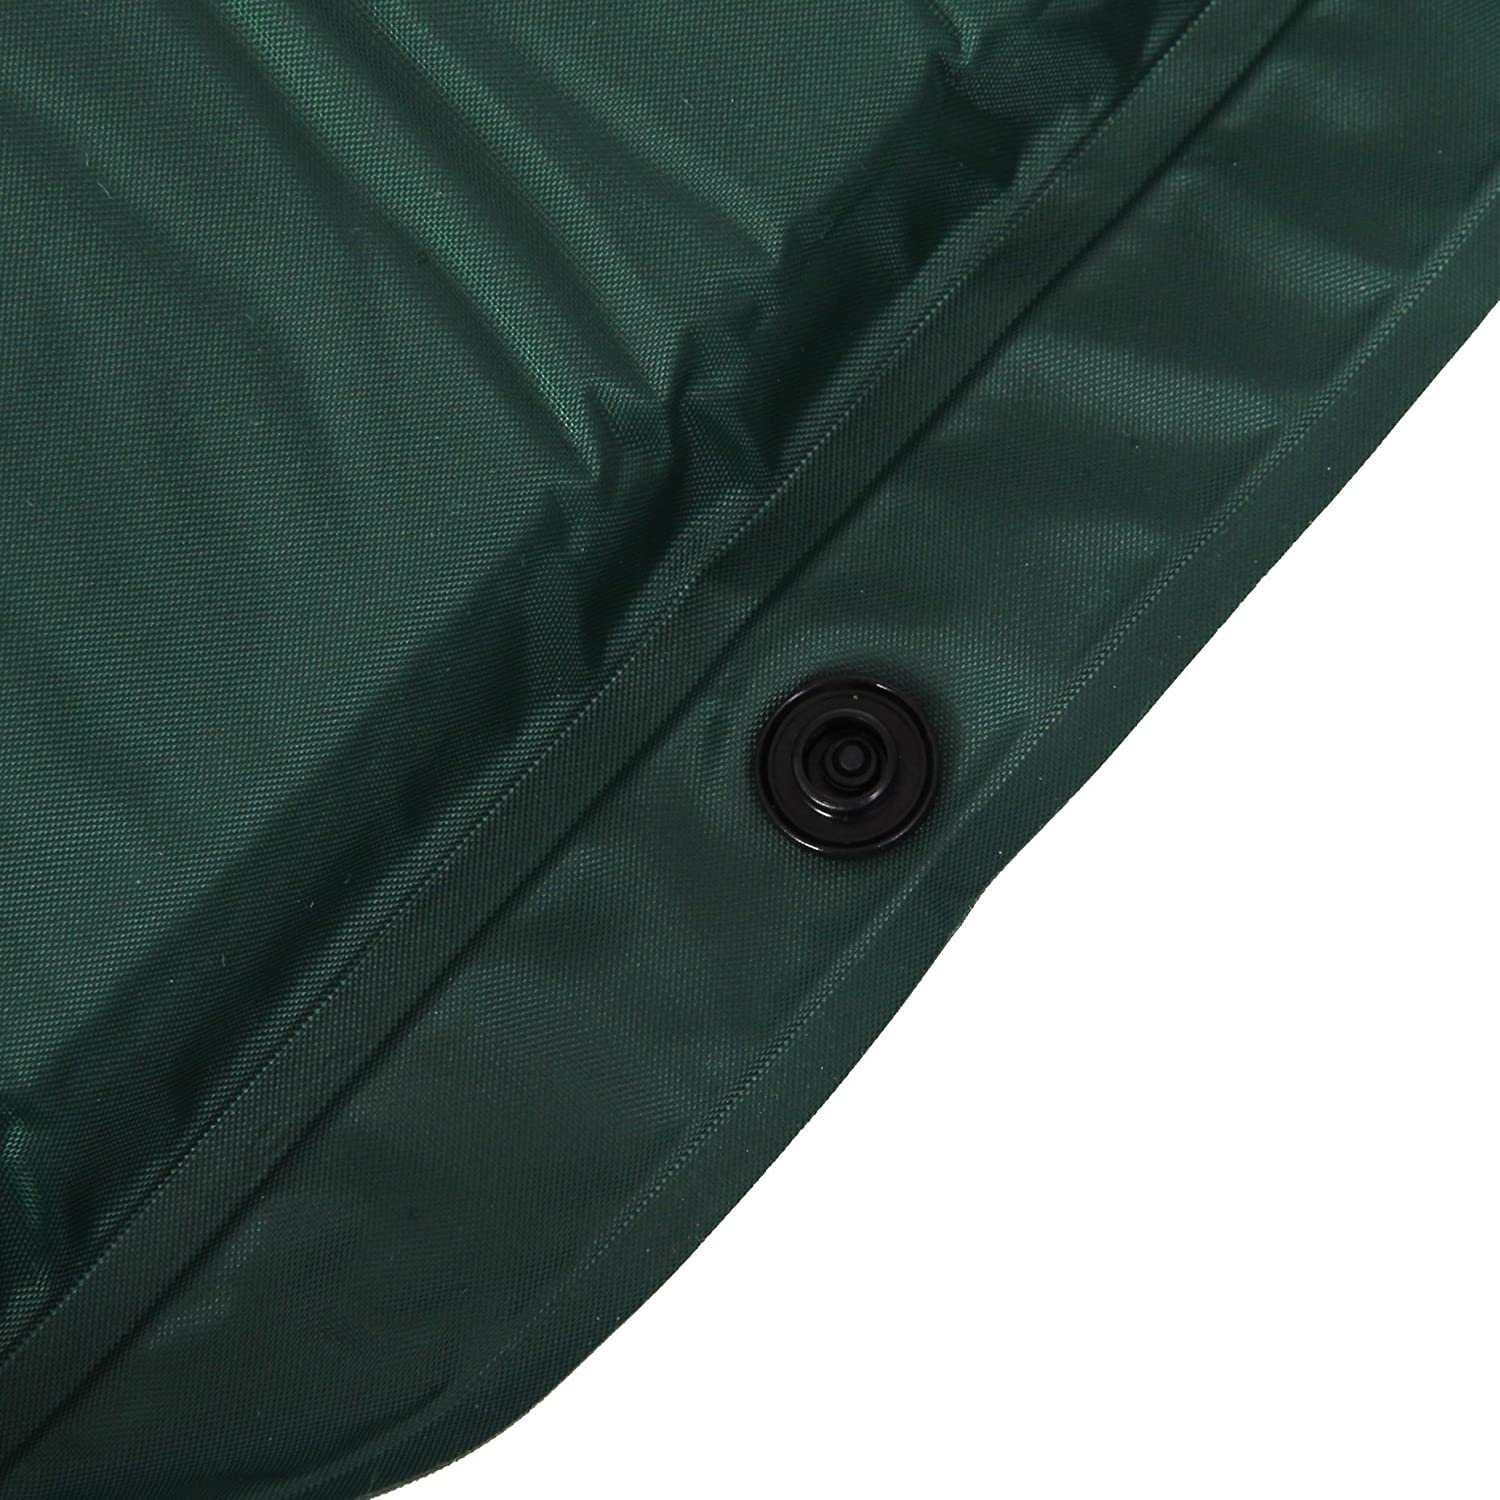 Wealers Camping Sleeping Mat Lightweight Automatic Inflatable Mattress Sleeping Pad Camping Bed with Attached Pillow